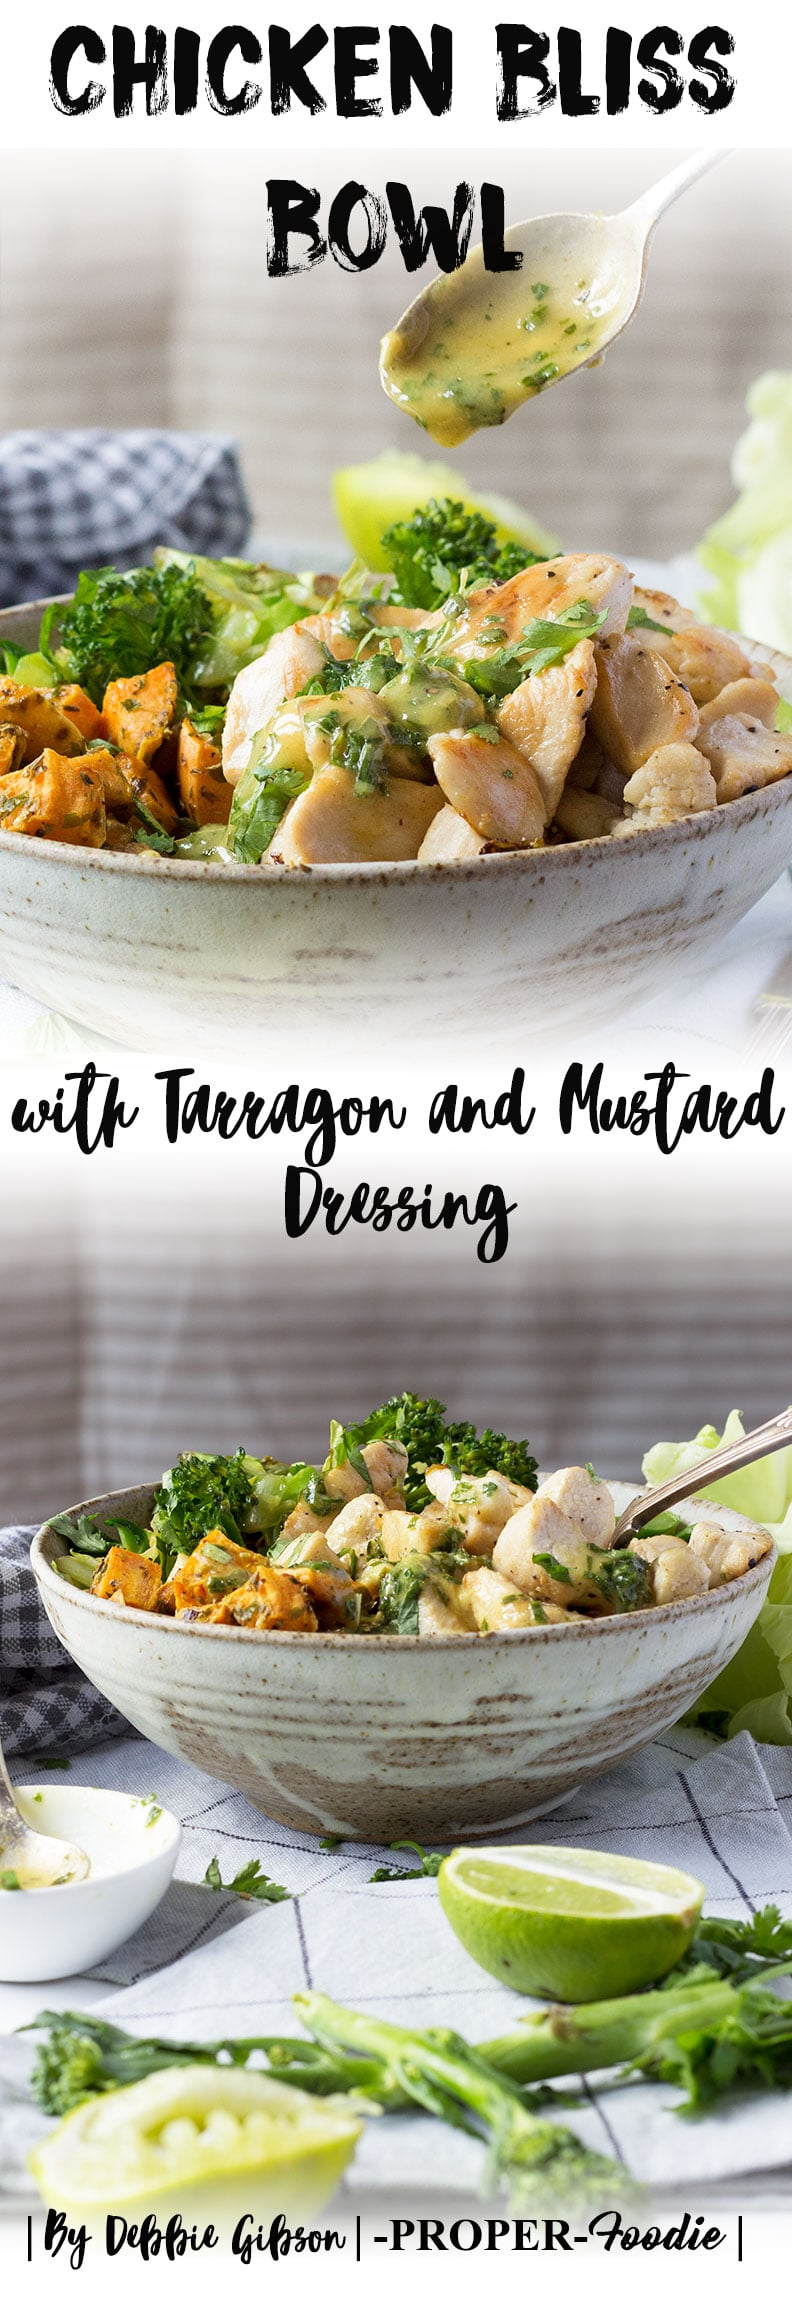 Chicken bliss bowls with tarragon and mustard dressing